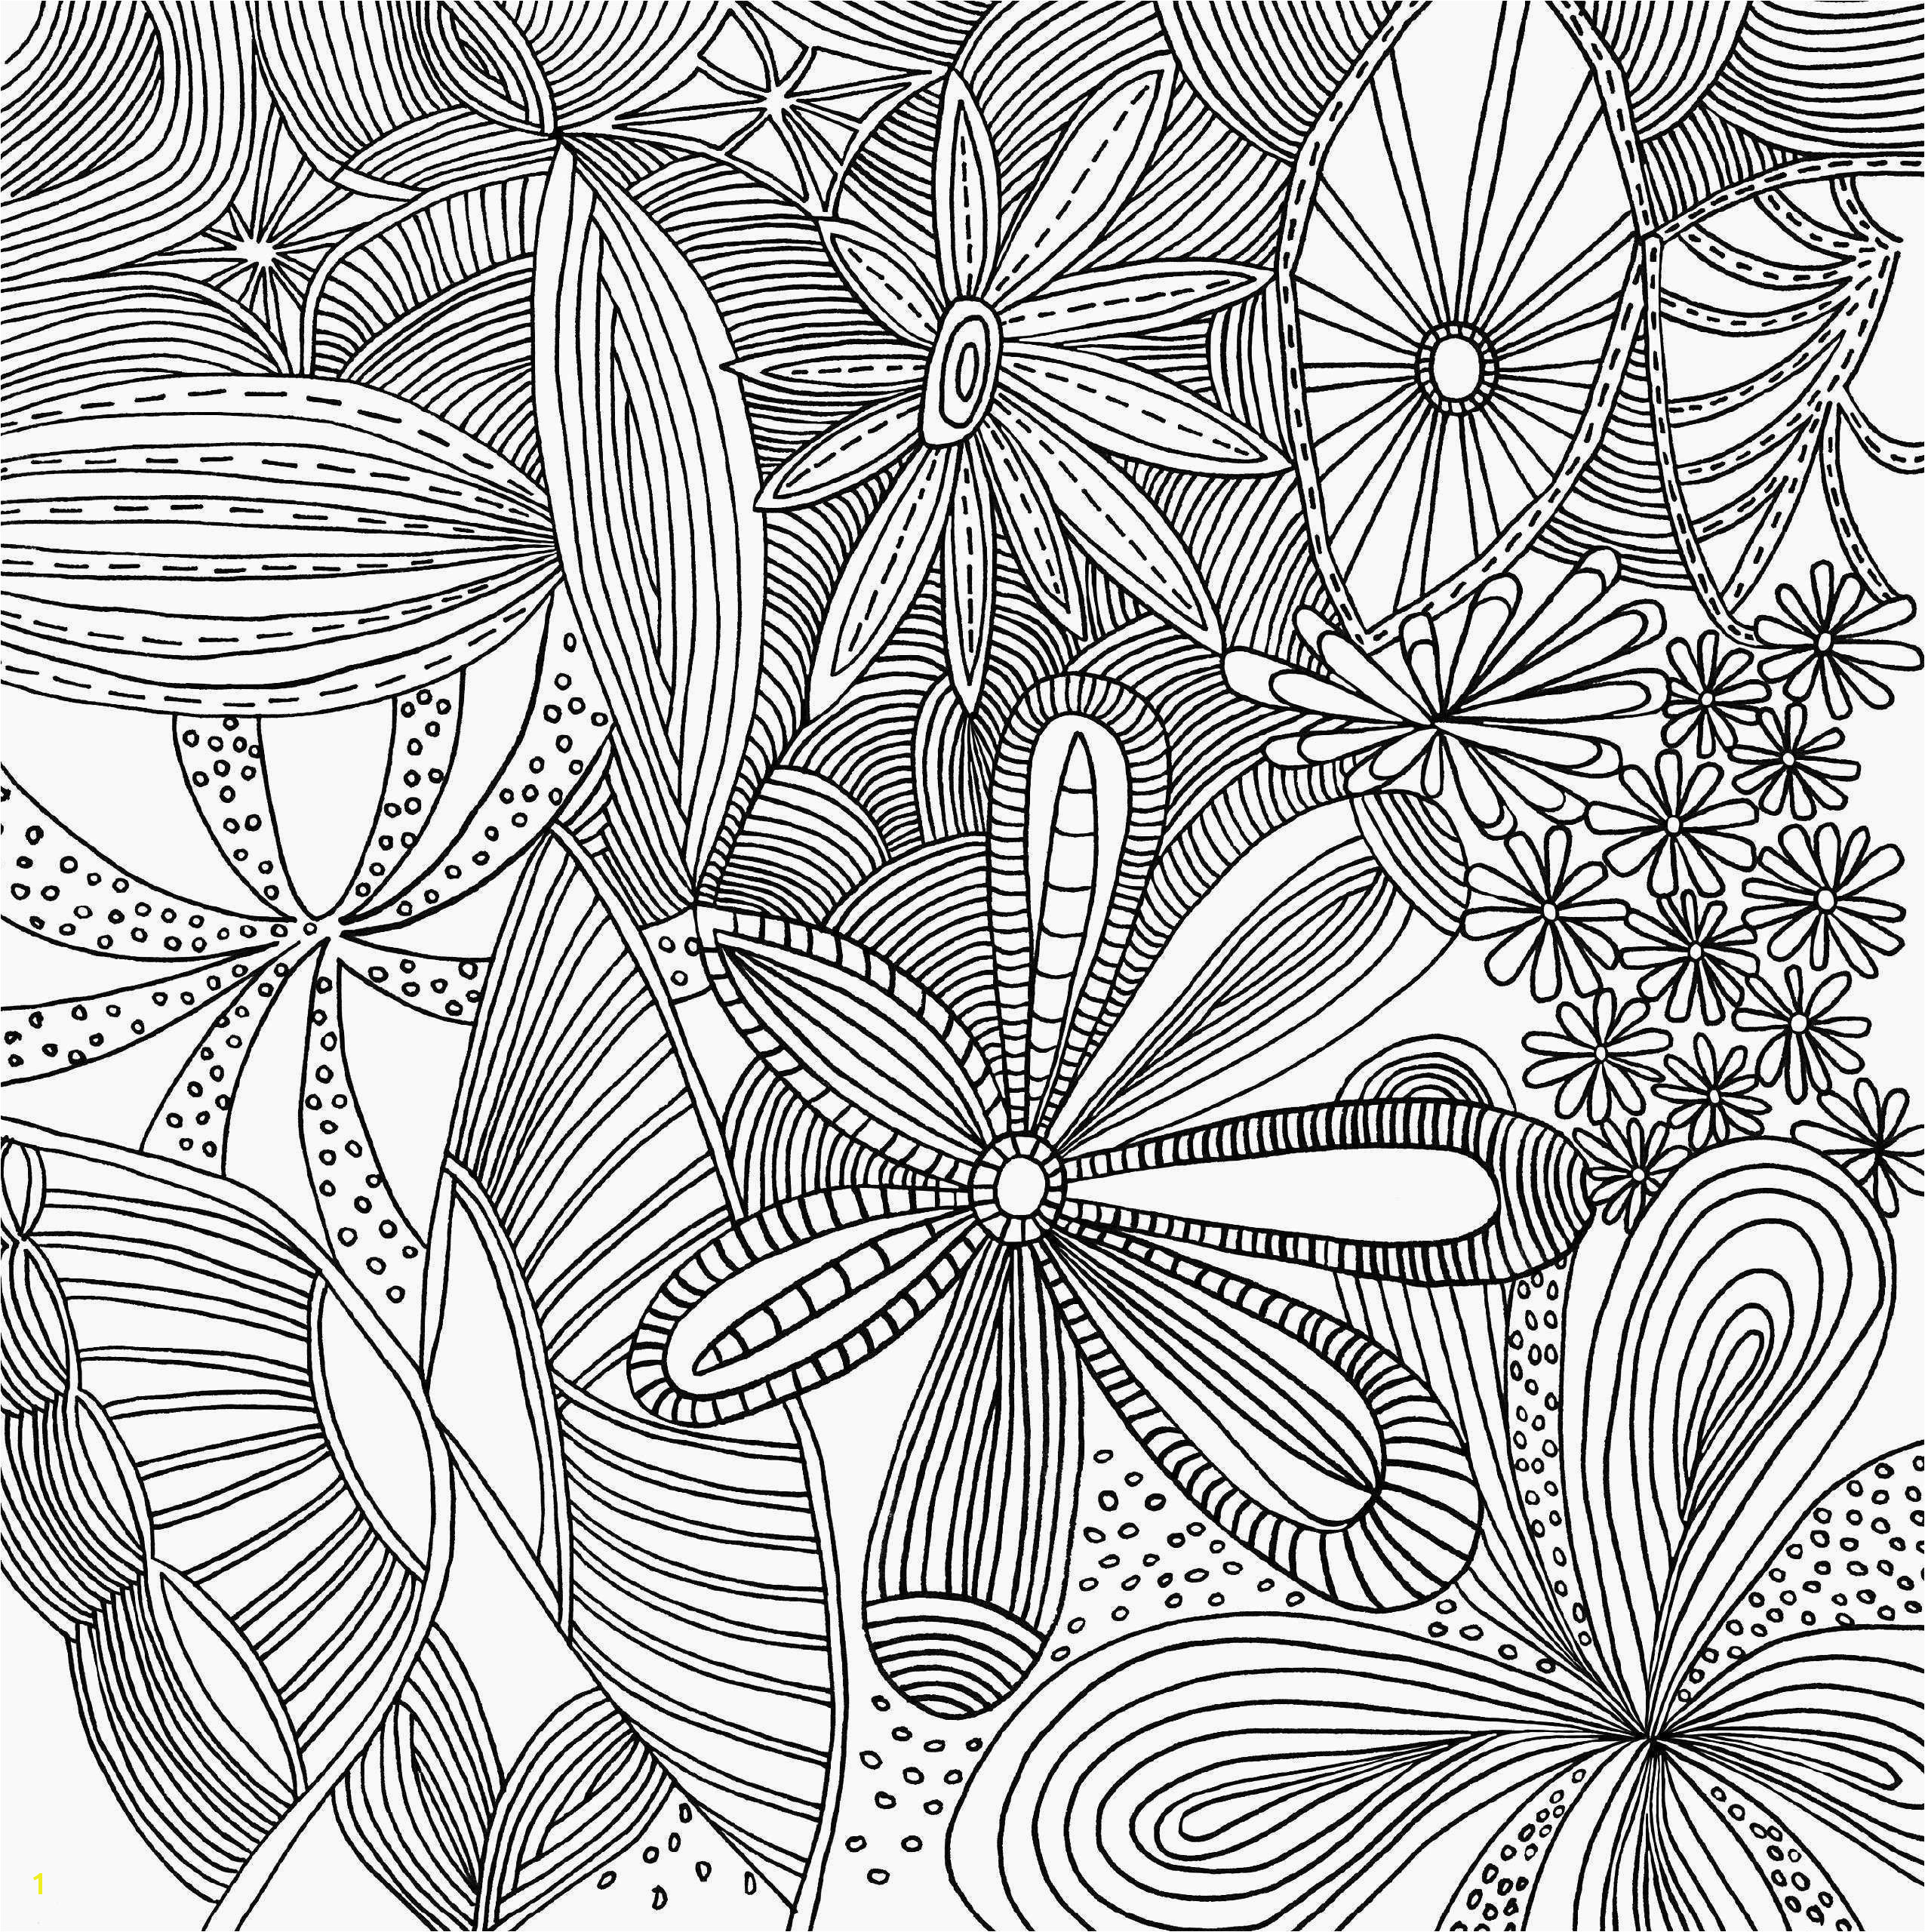 Daisy Girl Scout Coloring Pages Eclipse Coloring Pages Lovely Planet Colouring Sheets Appealing